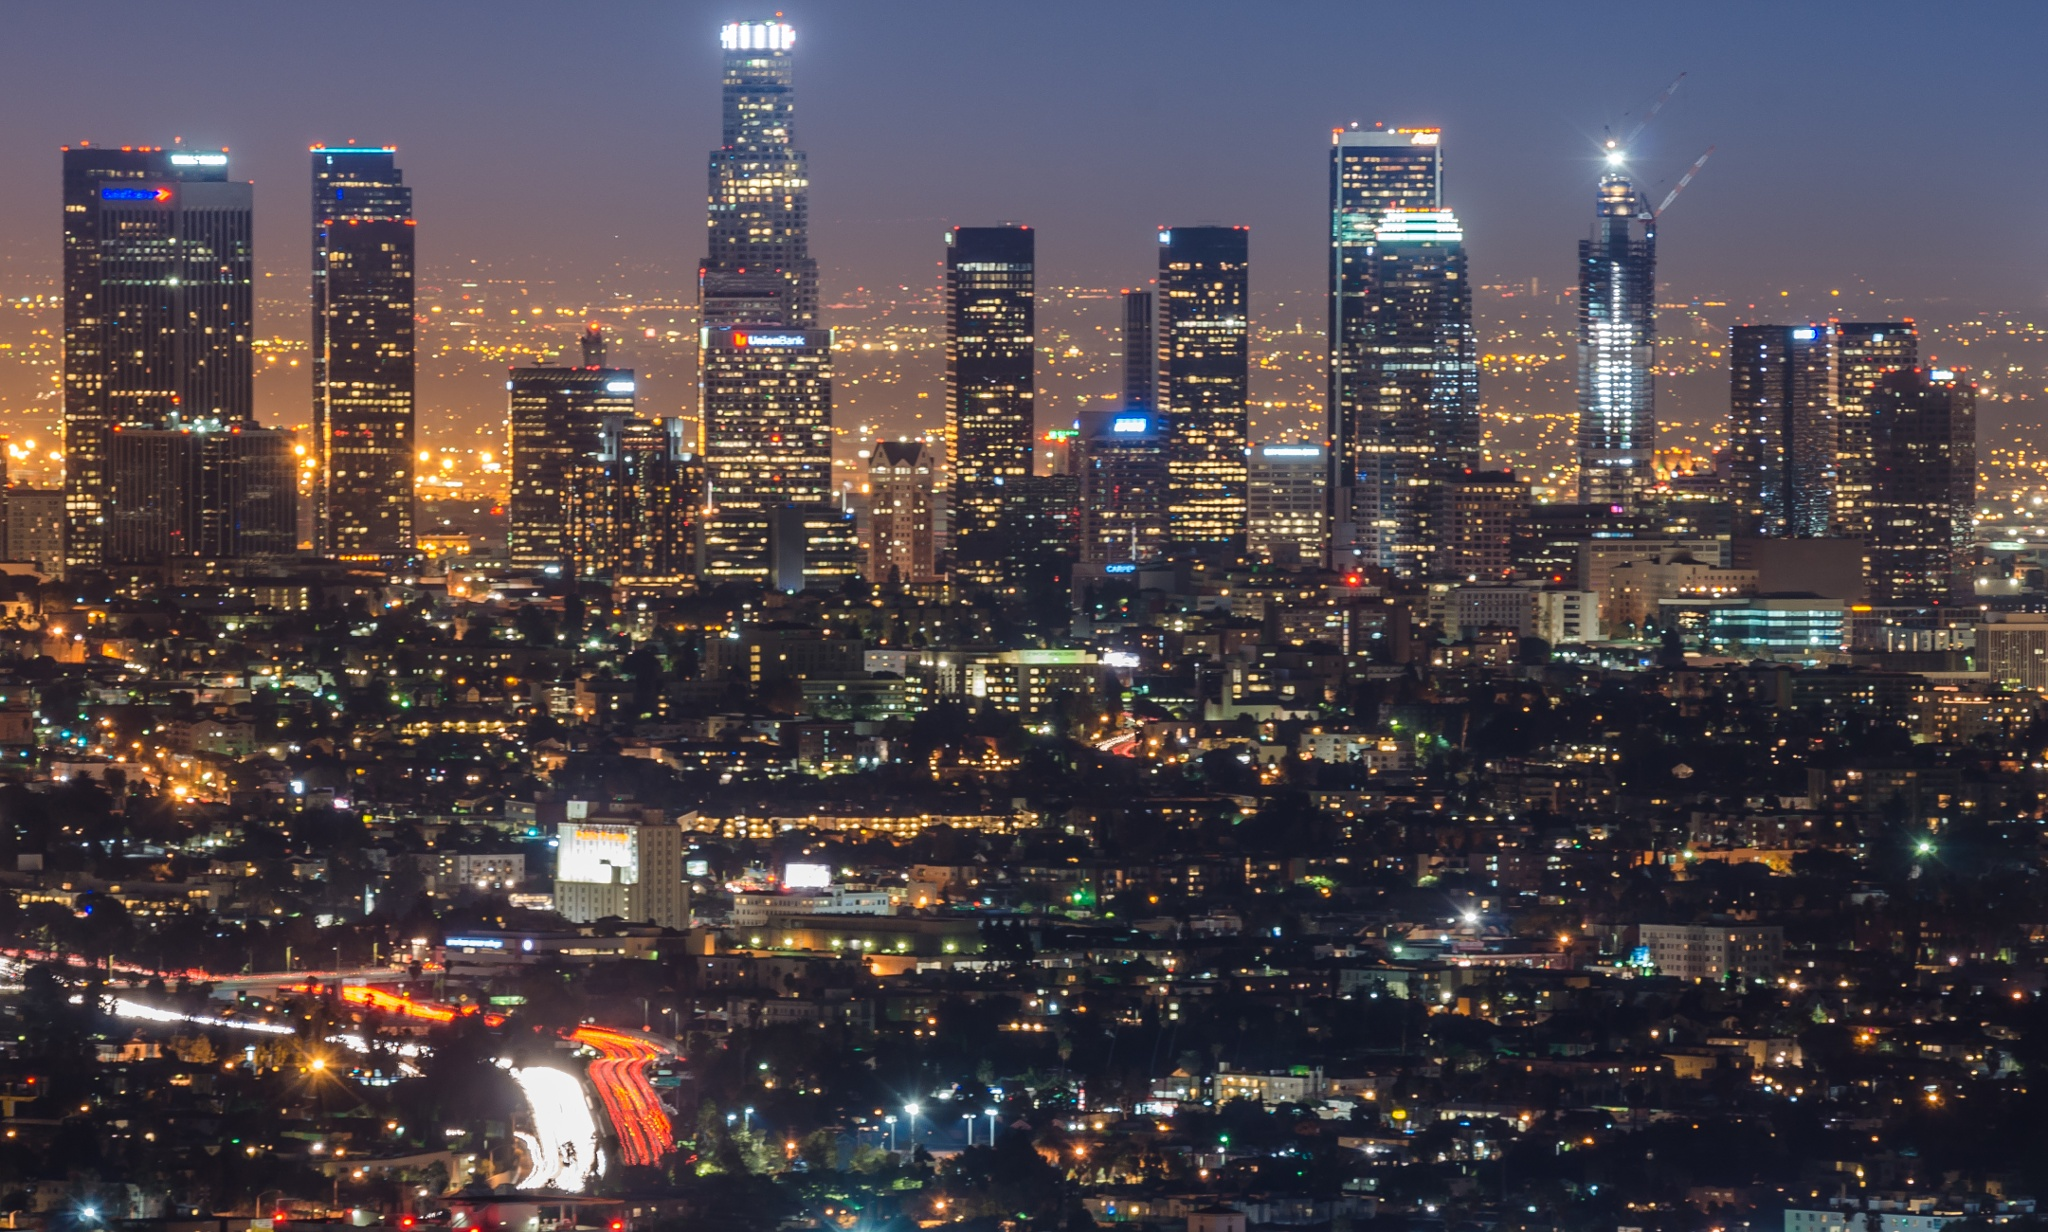 Downtown Los Angeles at night by clucian